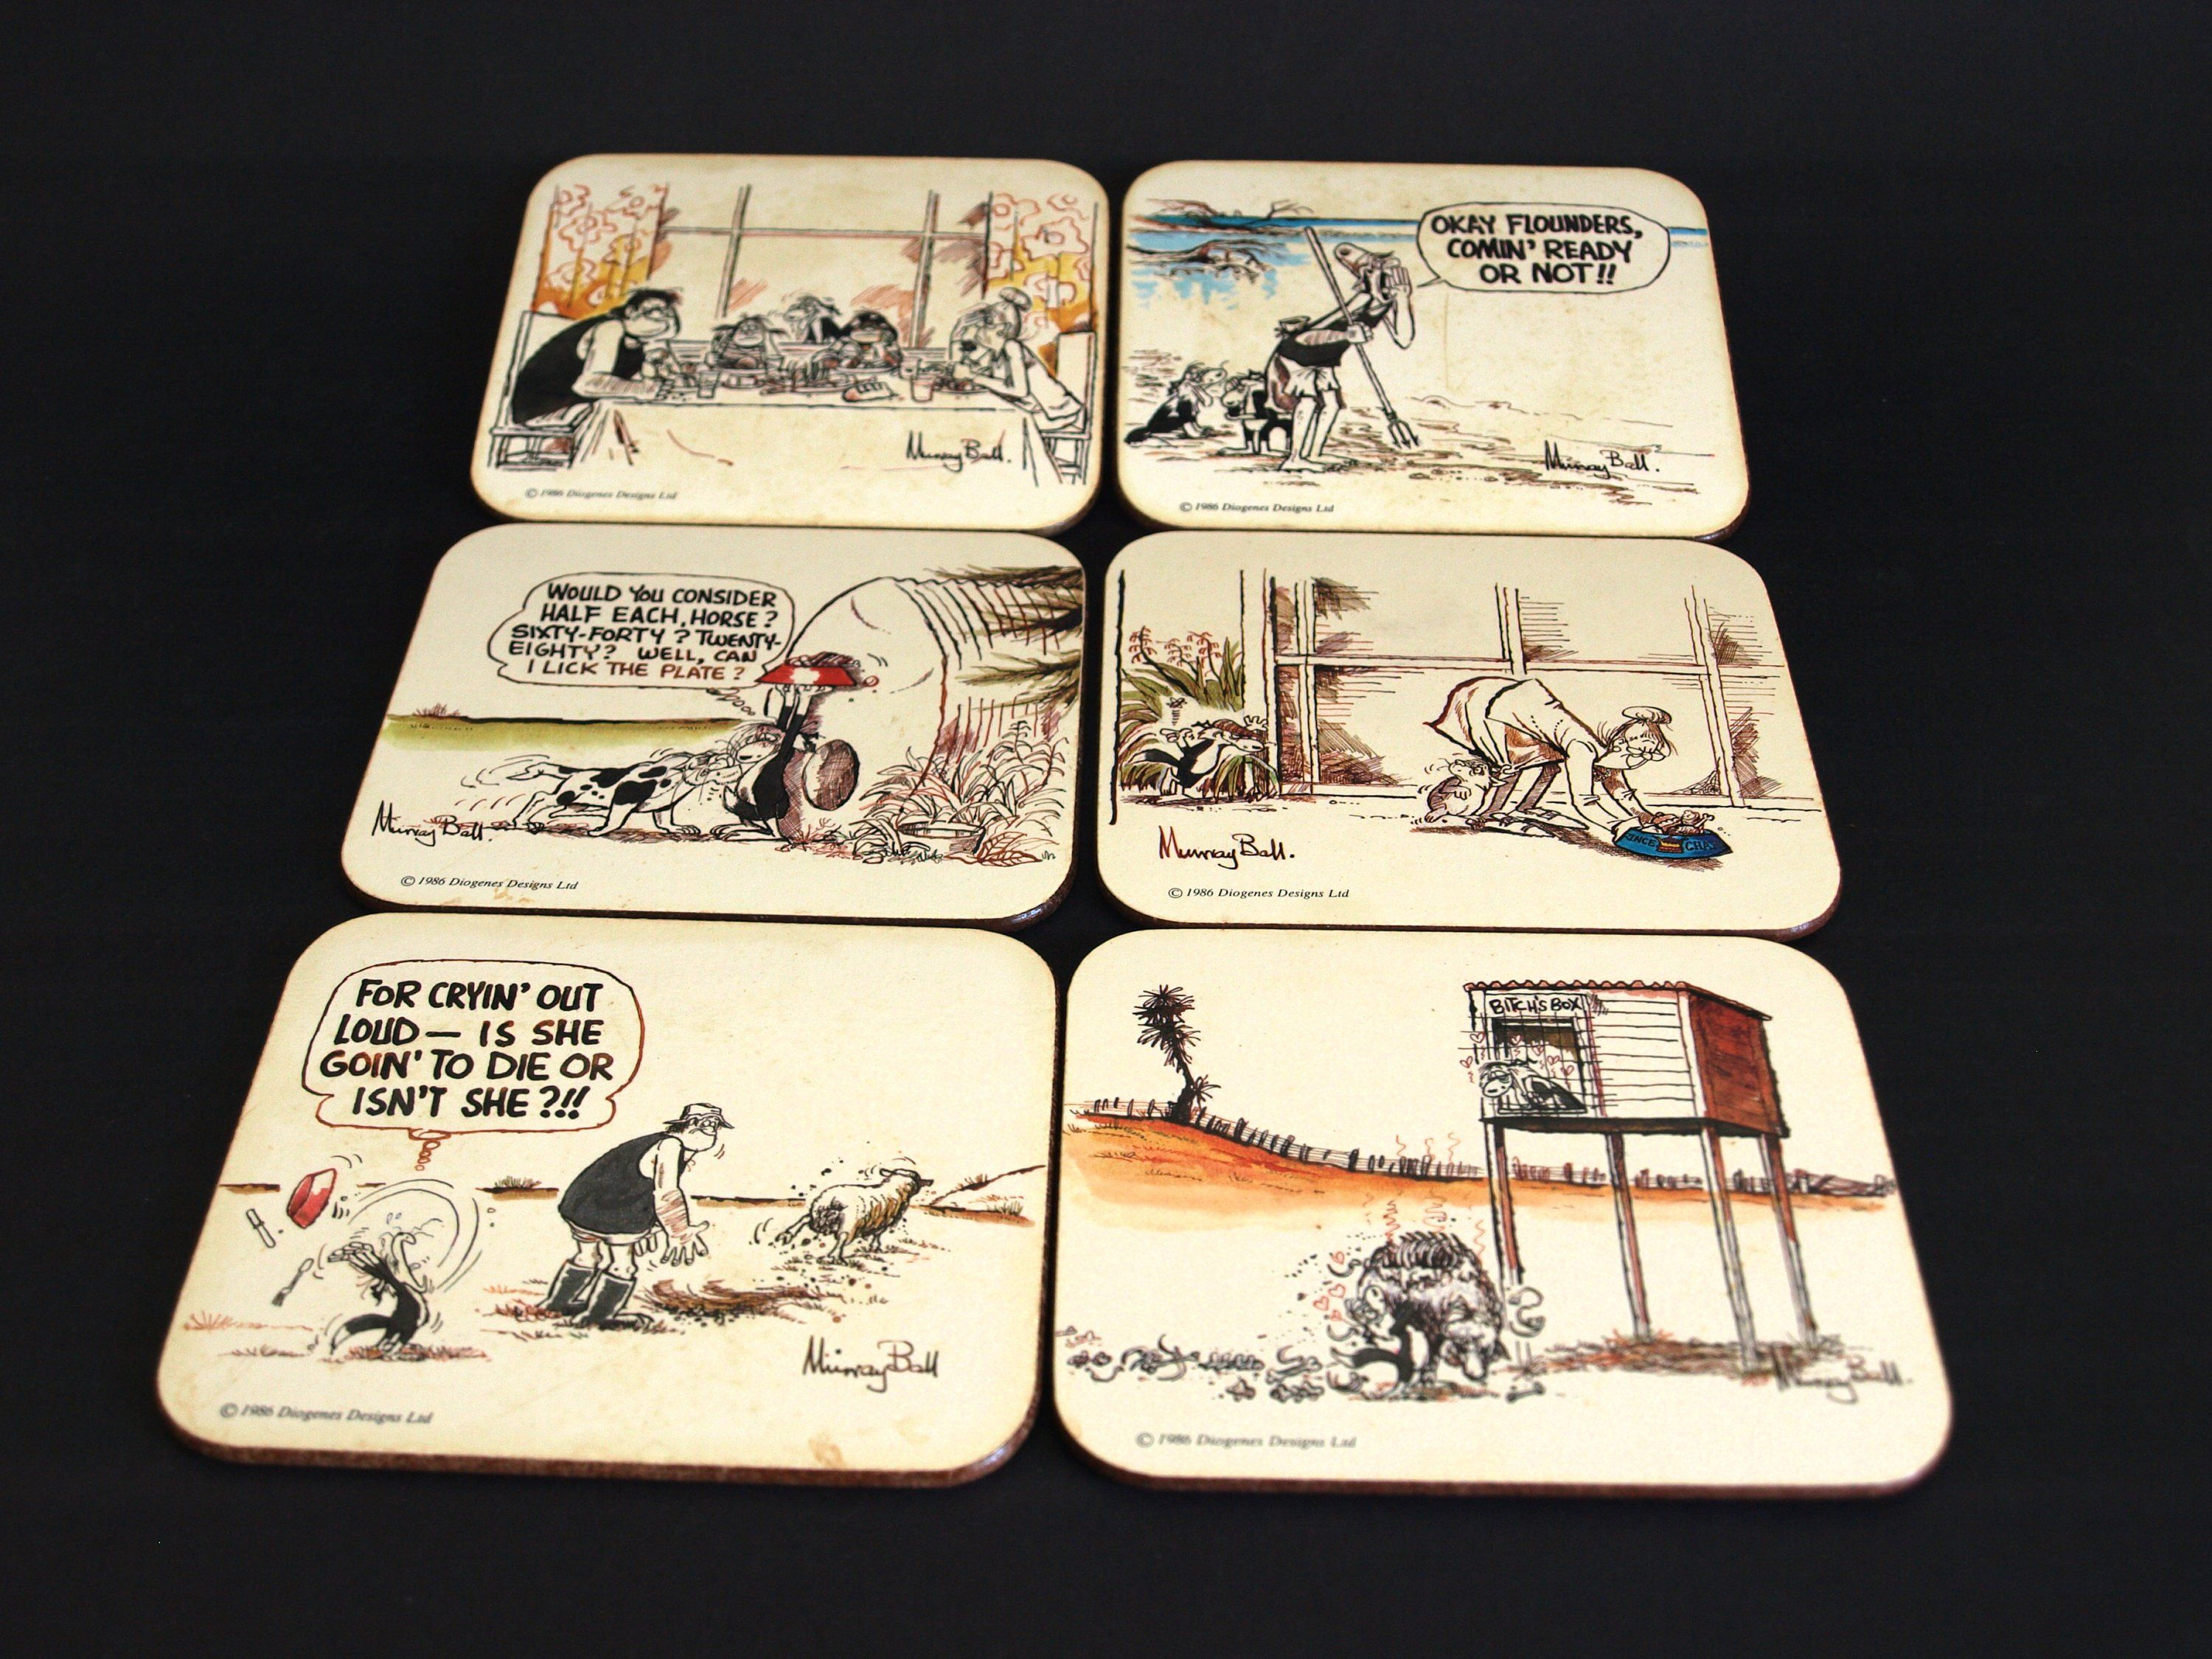 Footrot Flats Cork Coasters 1986 Vintage Comic Collectable Jason Set Of Six Drink Mats Made In New Zealand By Fu Footrot Flats Cork Coasters Vintage Comics